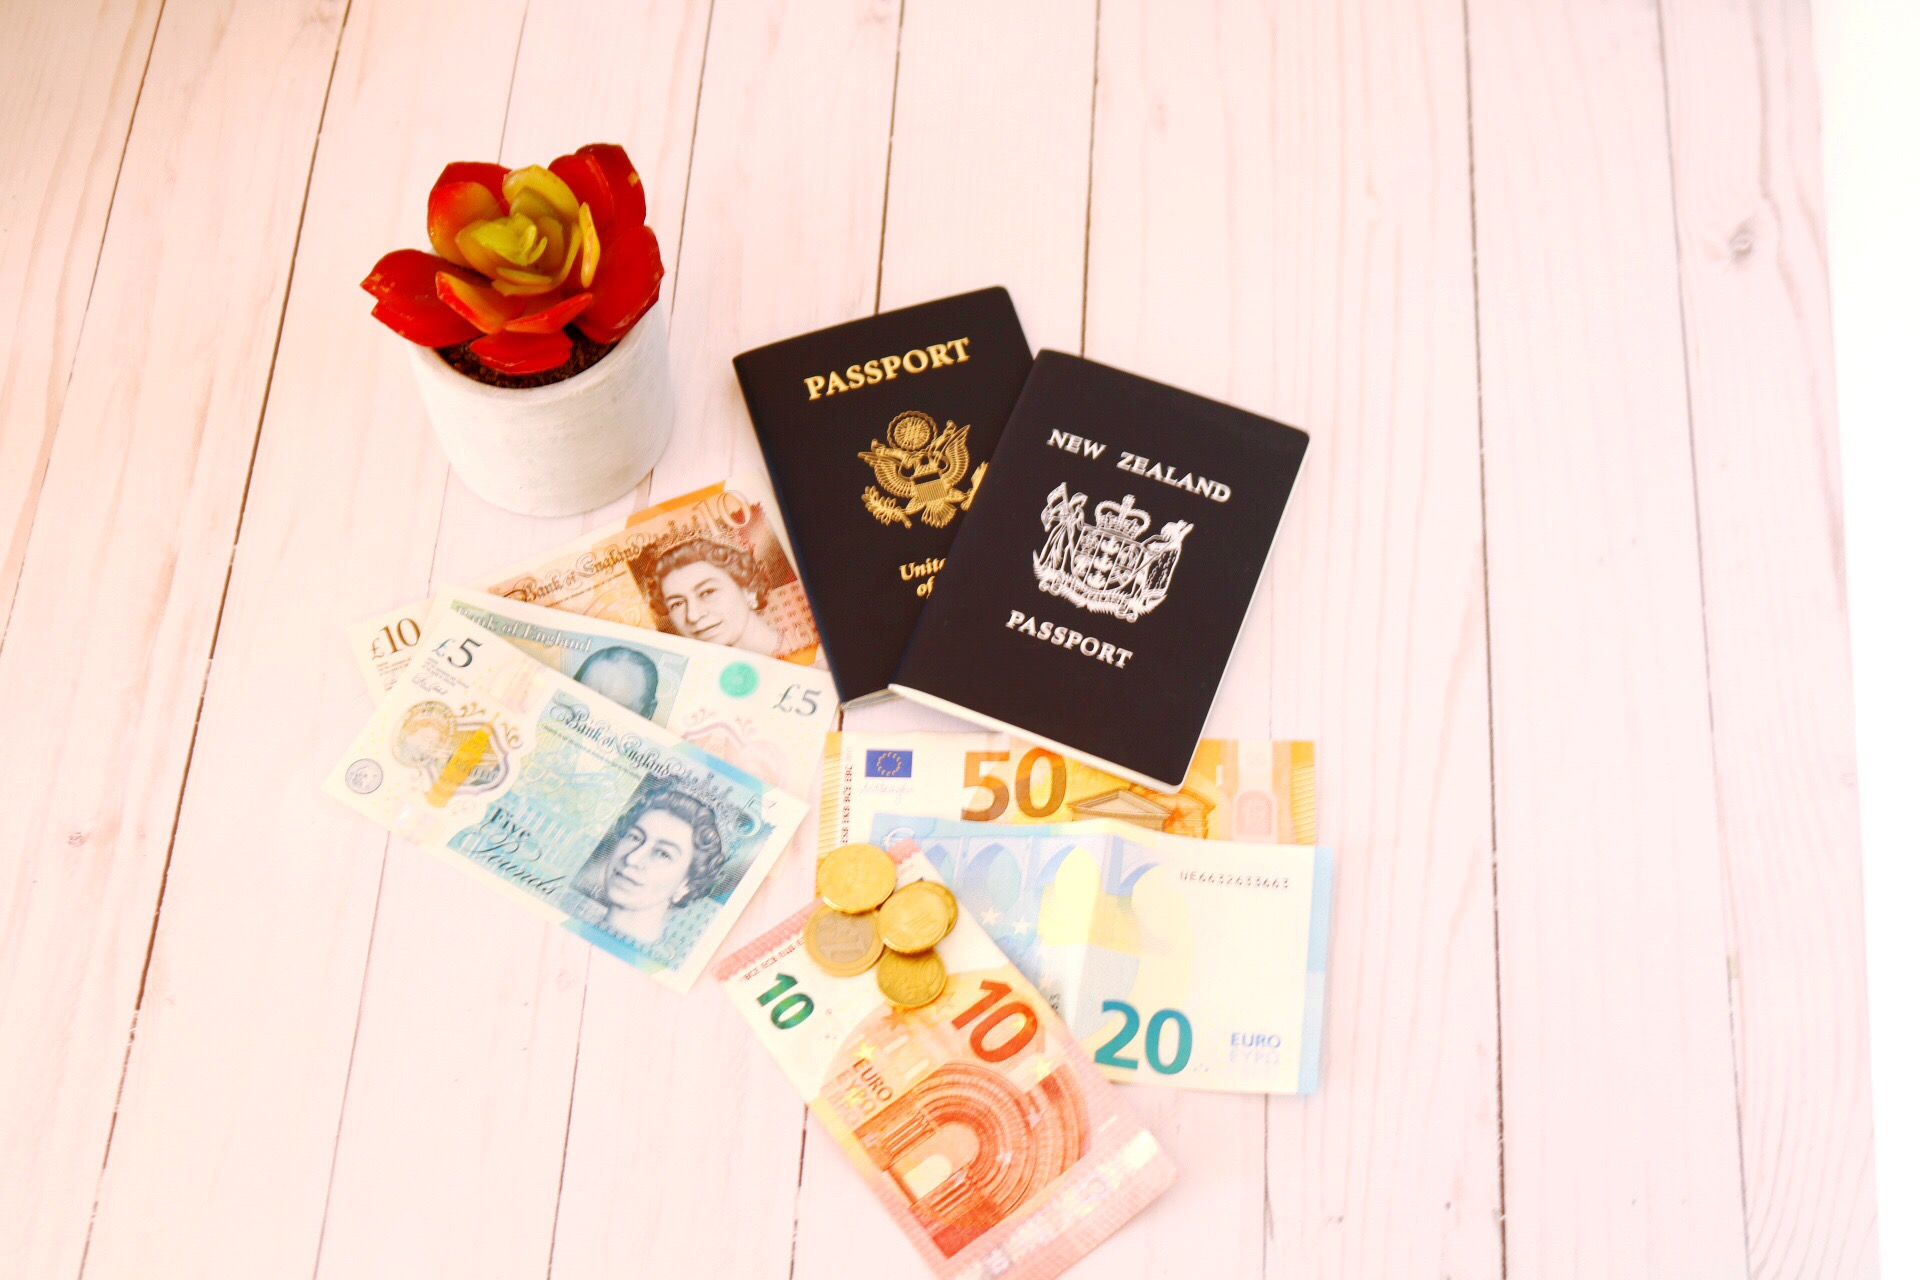 How to manage your money while traveling overseas. Tips on working with foreign currencies, how to manage cash, debit cards and credit cards when traveling internationally. How to avoid pickpockets